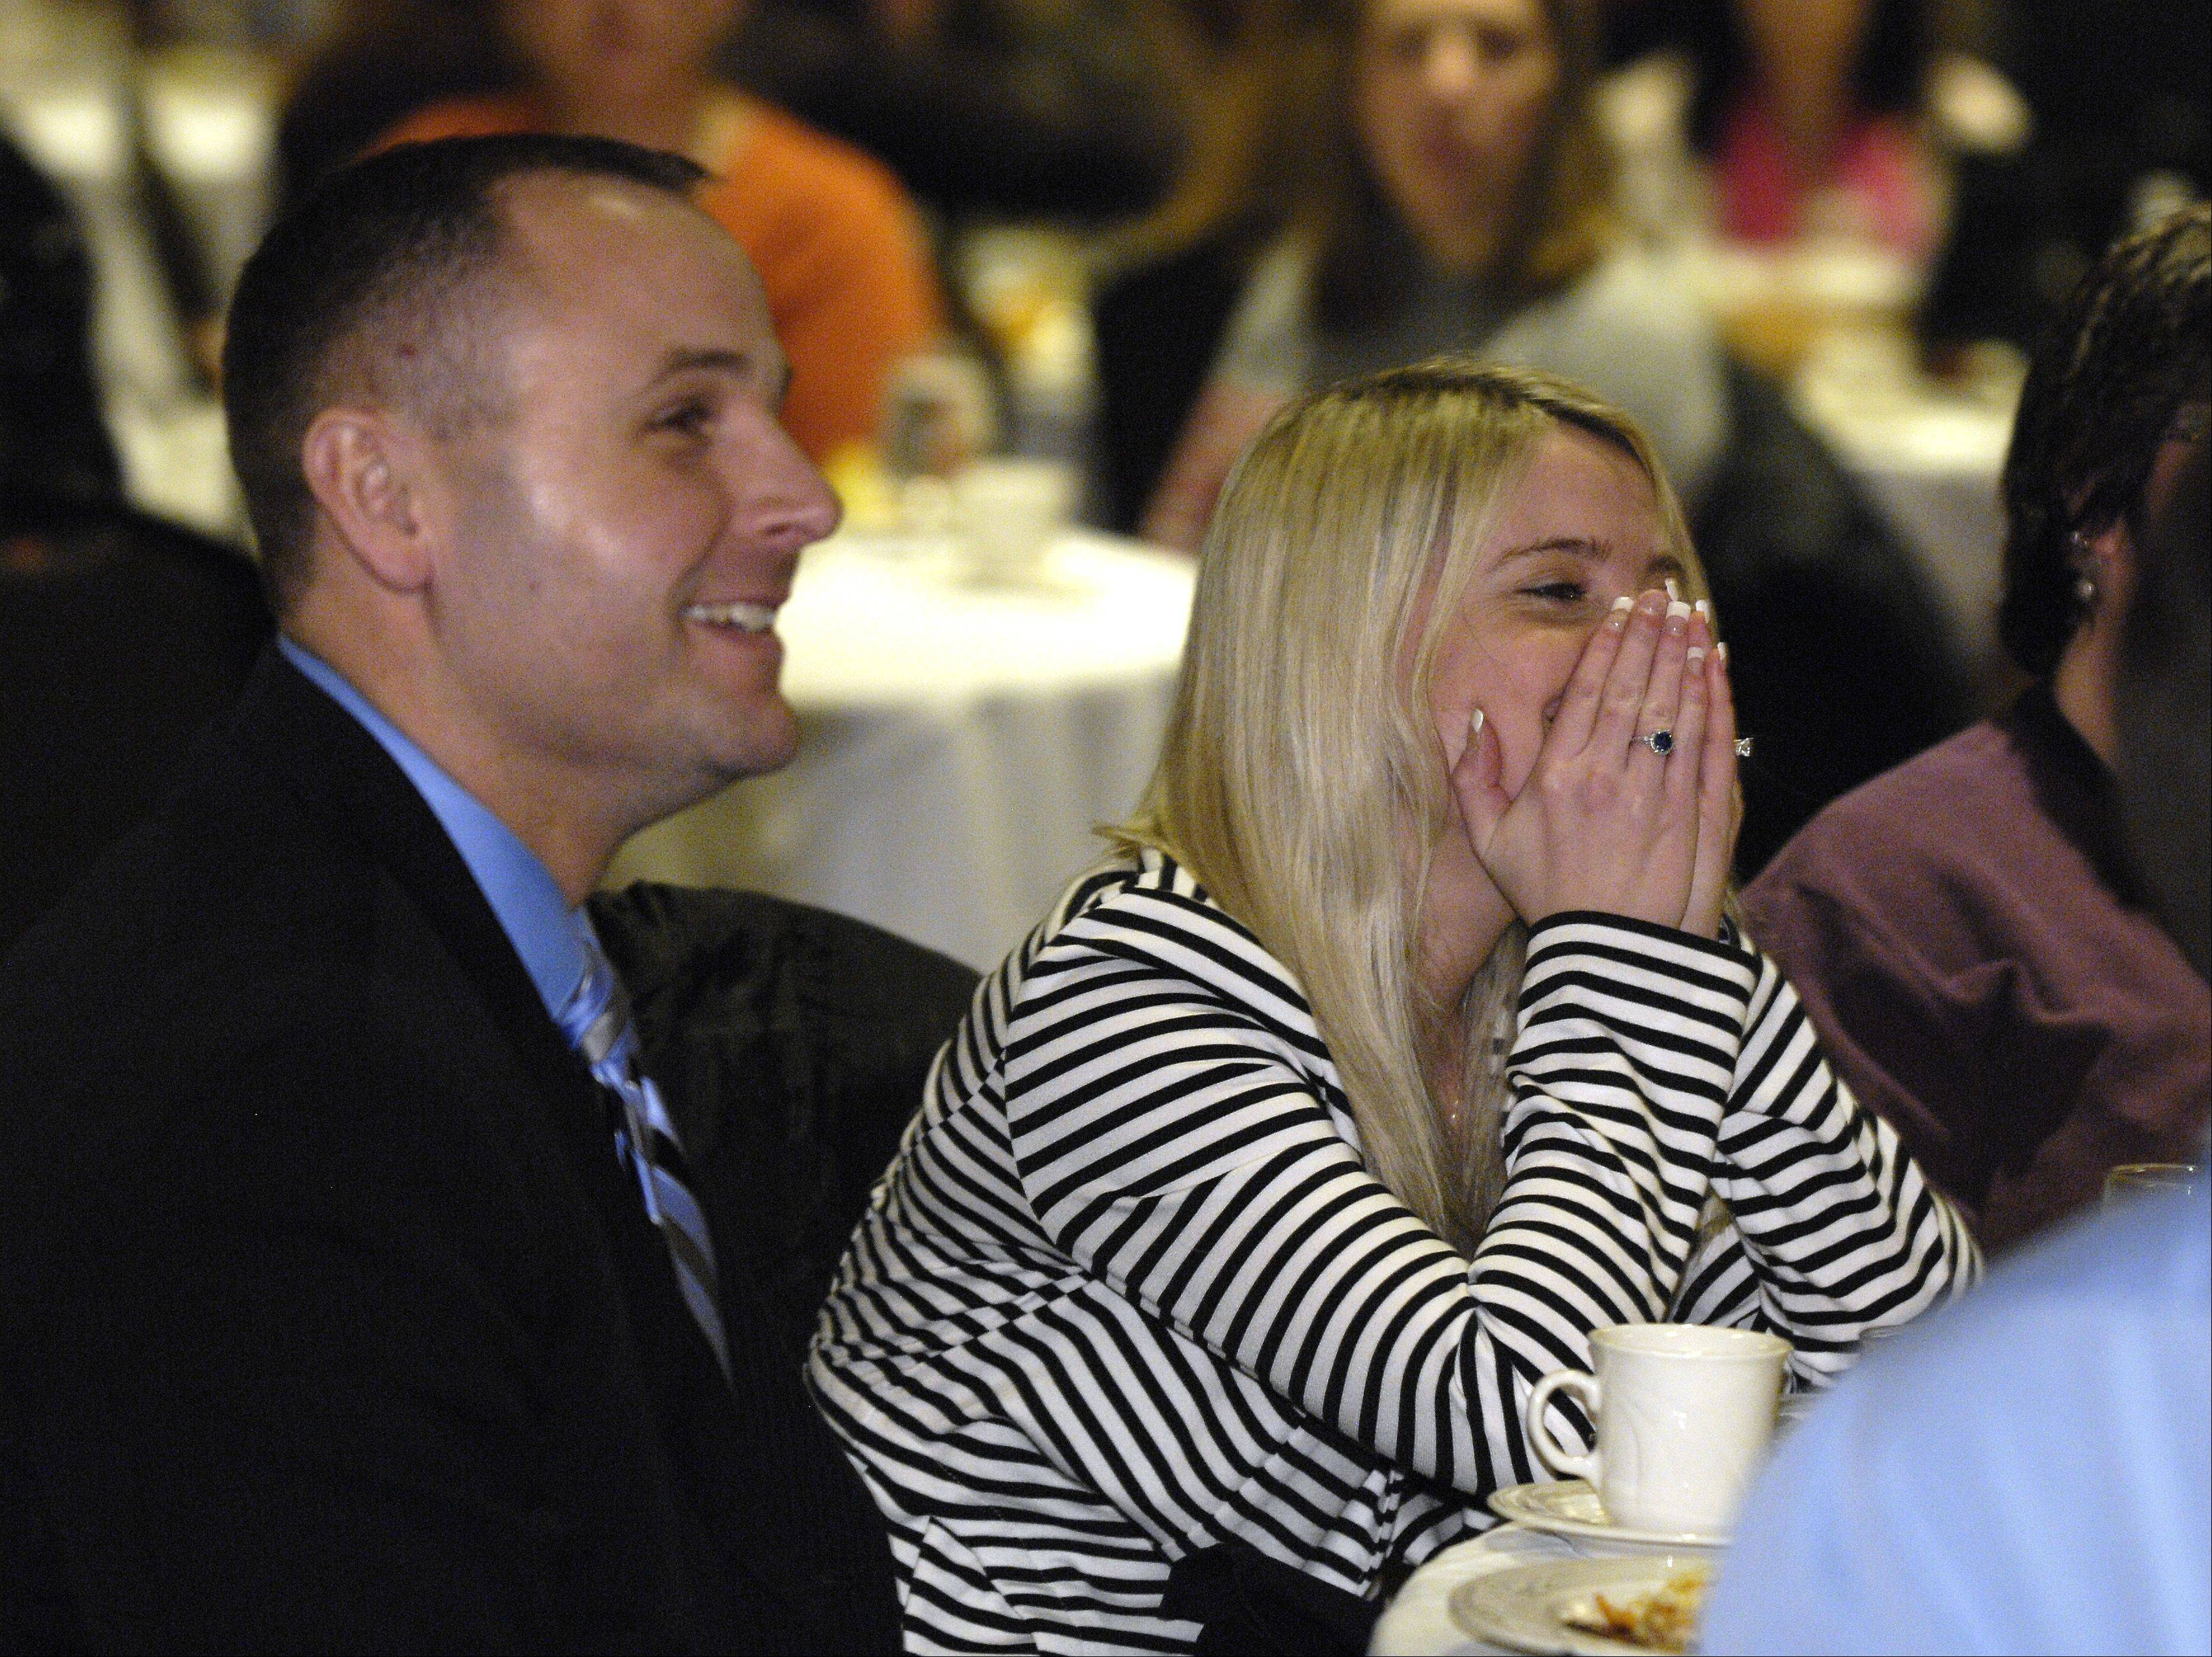 With Dixon Police Chief Dan Langloss at her side, Schaumburg native Erin Merryn reacts to receiving the �Champion for Children Award� from the Children�s Advocacy Center on Monday during a luncheon at Indian Lakes Resort in Bloomingdale. Merryn helped pass �Erin�s Law,� which went into effect earlier this year and mandates sexual abuse awareness programs in all Illinois schools.